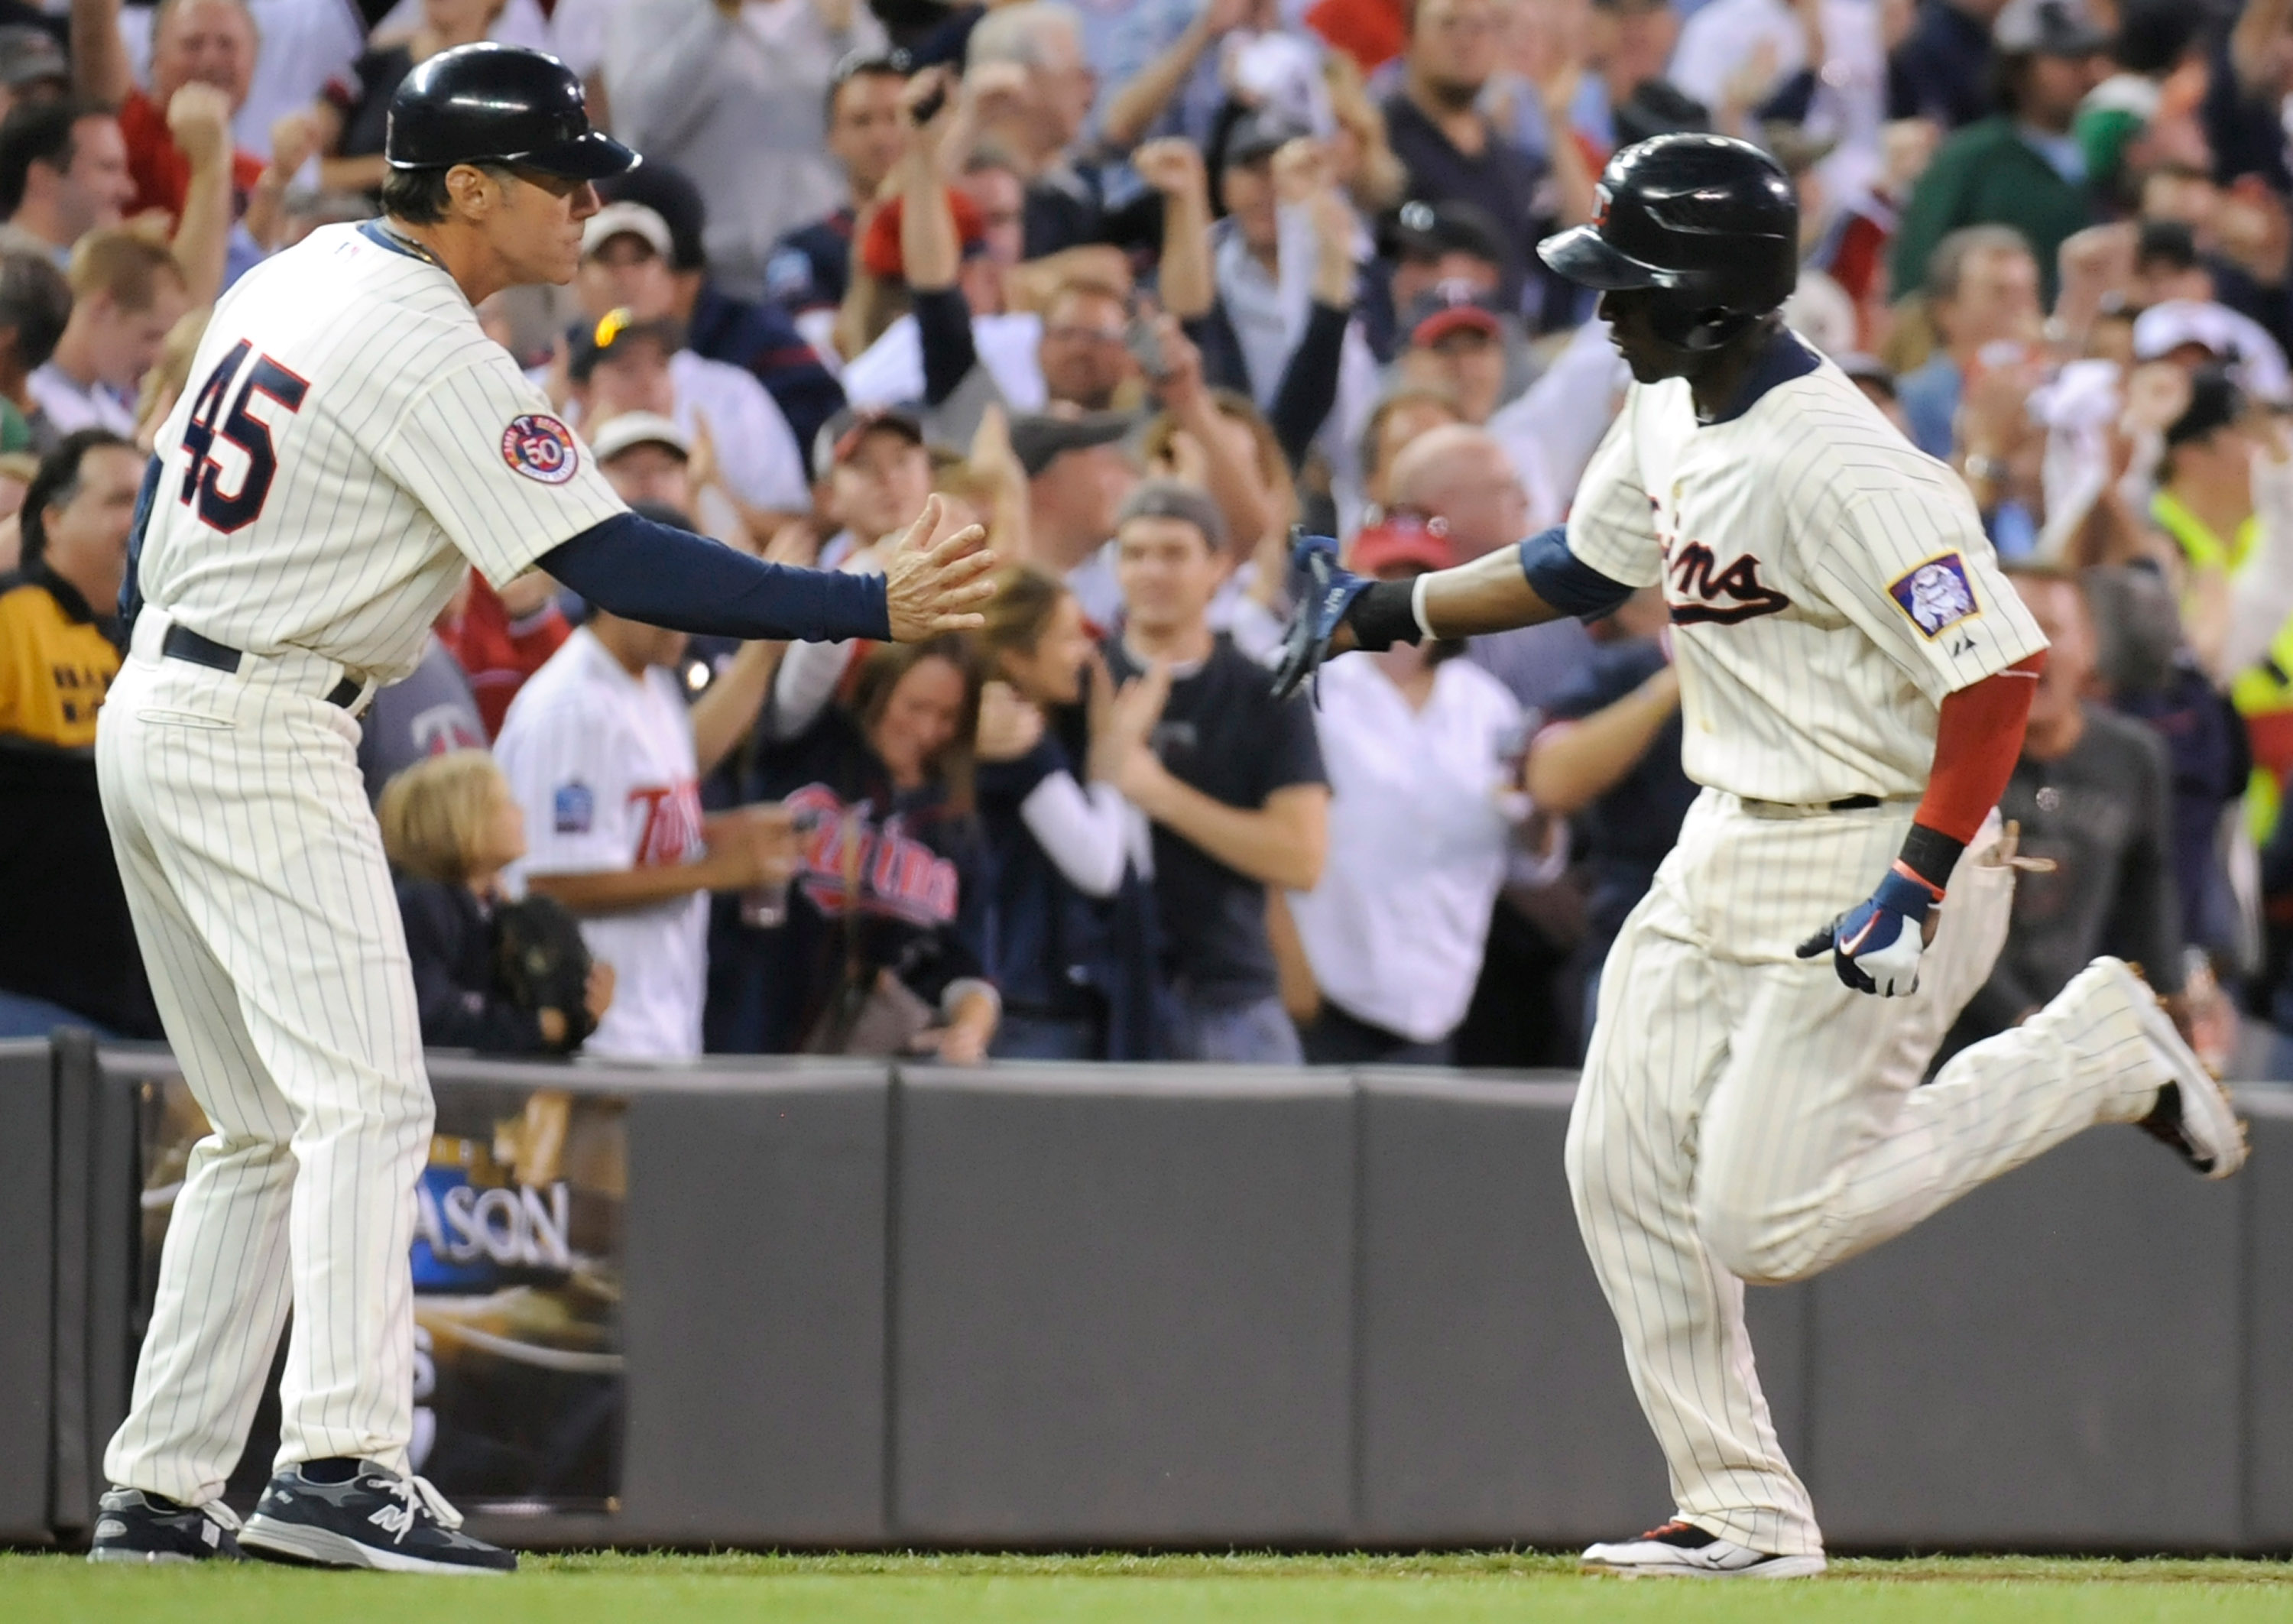 MINNEAPOLIS, MN - OCTOBER 7: Orlando Hudson #1 of the Minnesota Twins celebrates a solo home run with third base coach Scott Ullger #45 in the sixth inning during game two of the ALDS game against the Minnesota Twins on October 7, 2010 at Target Field in